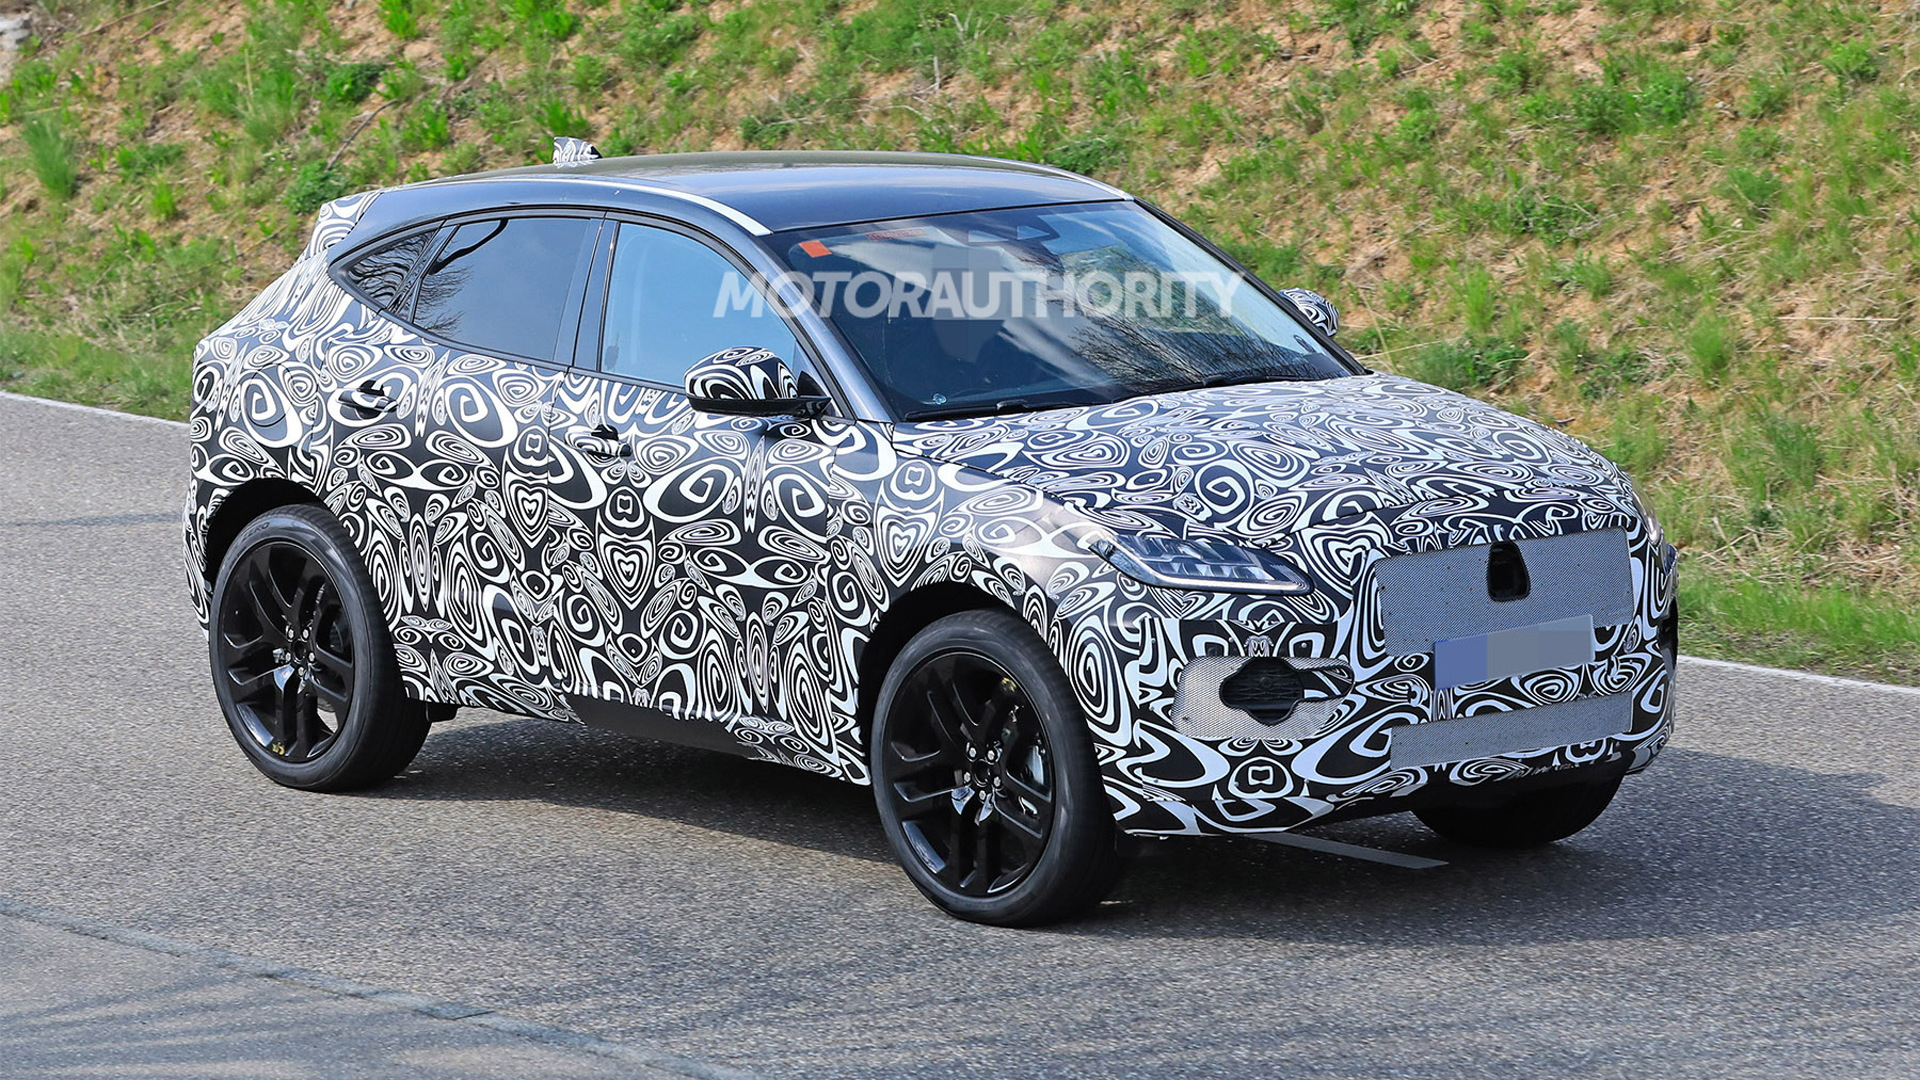 2021 Jaguar E-Pace facelift spy shots - Photo credit: S. Baldauf/SB-Medien